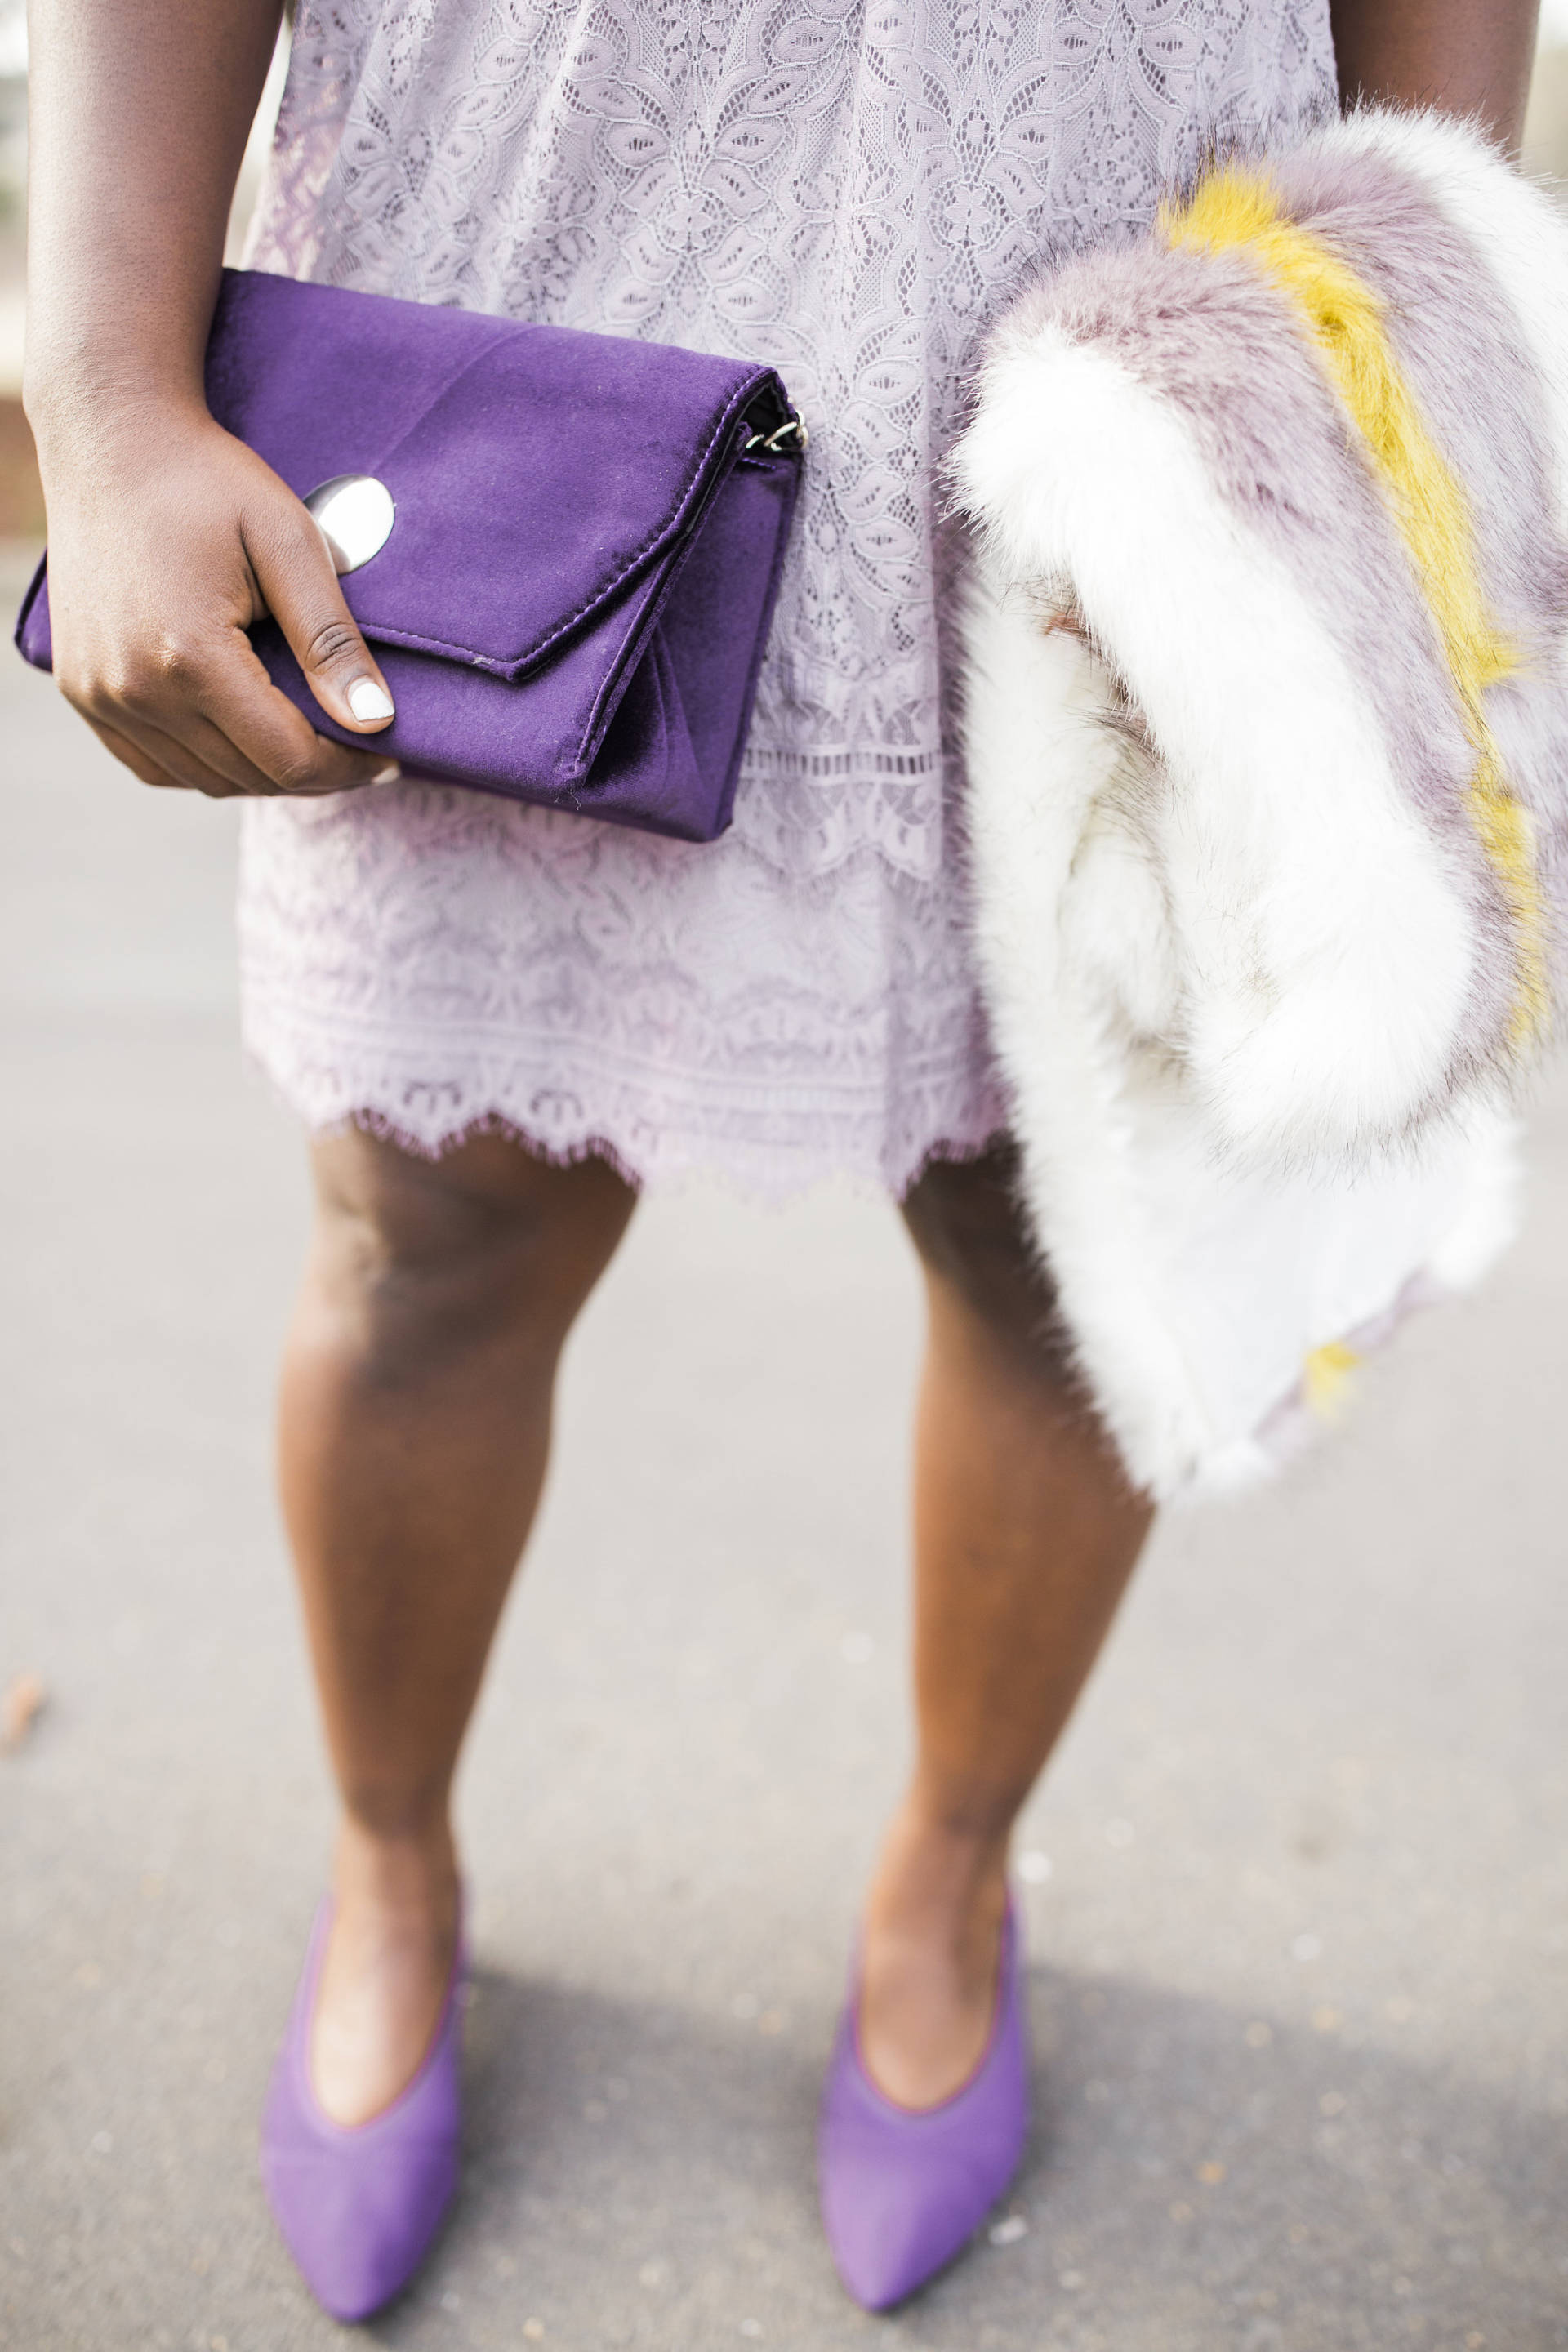 Pantone Color Of The Year: Ultra Violet.... You don't have to love the color to rock it with confidence! Different shades of purple can be absolutely beautiful.